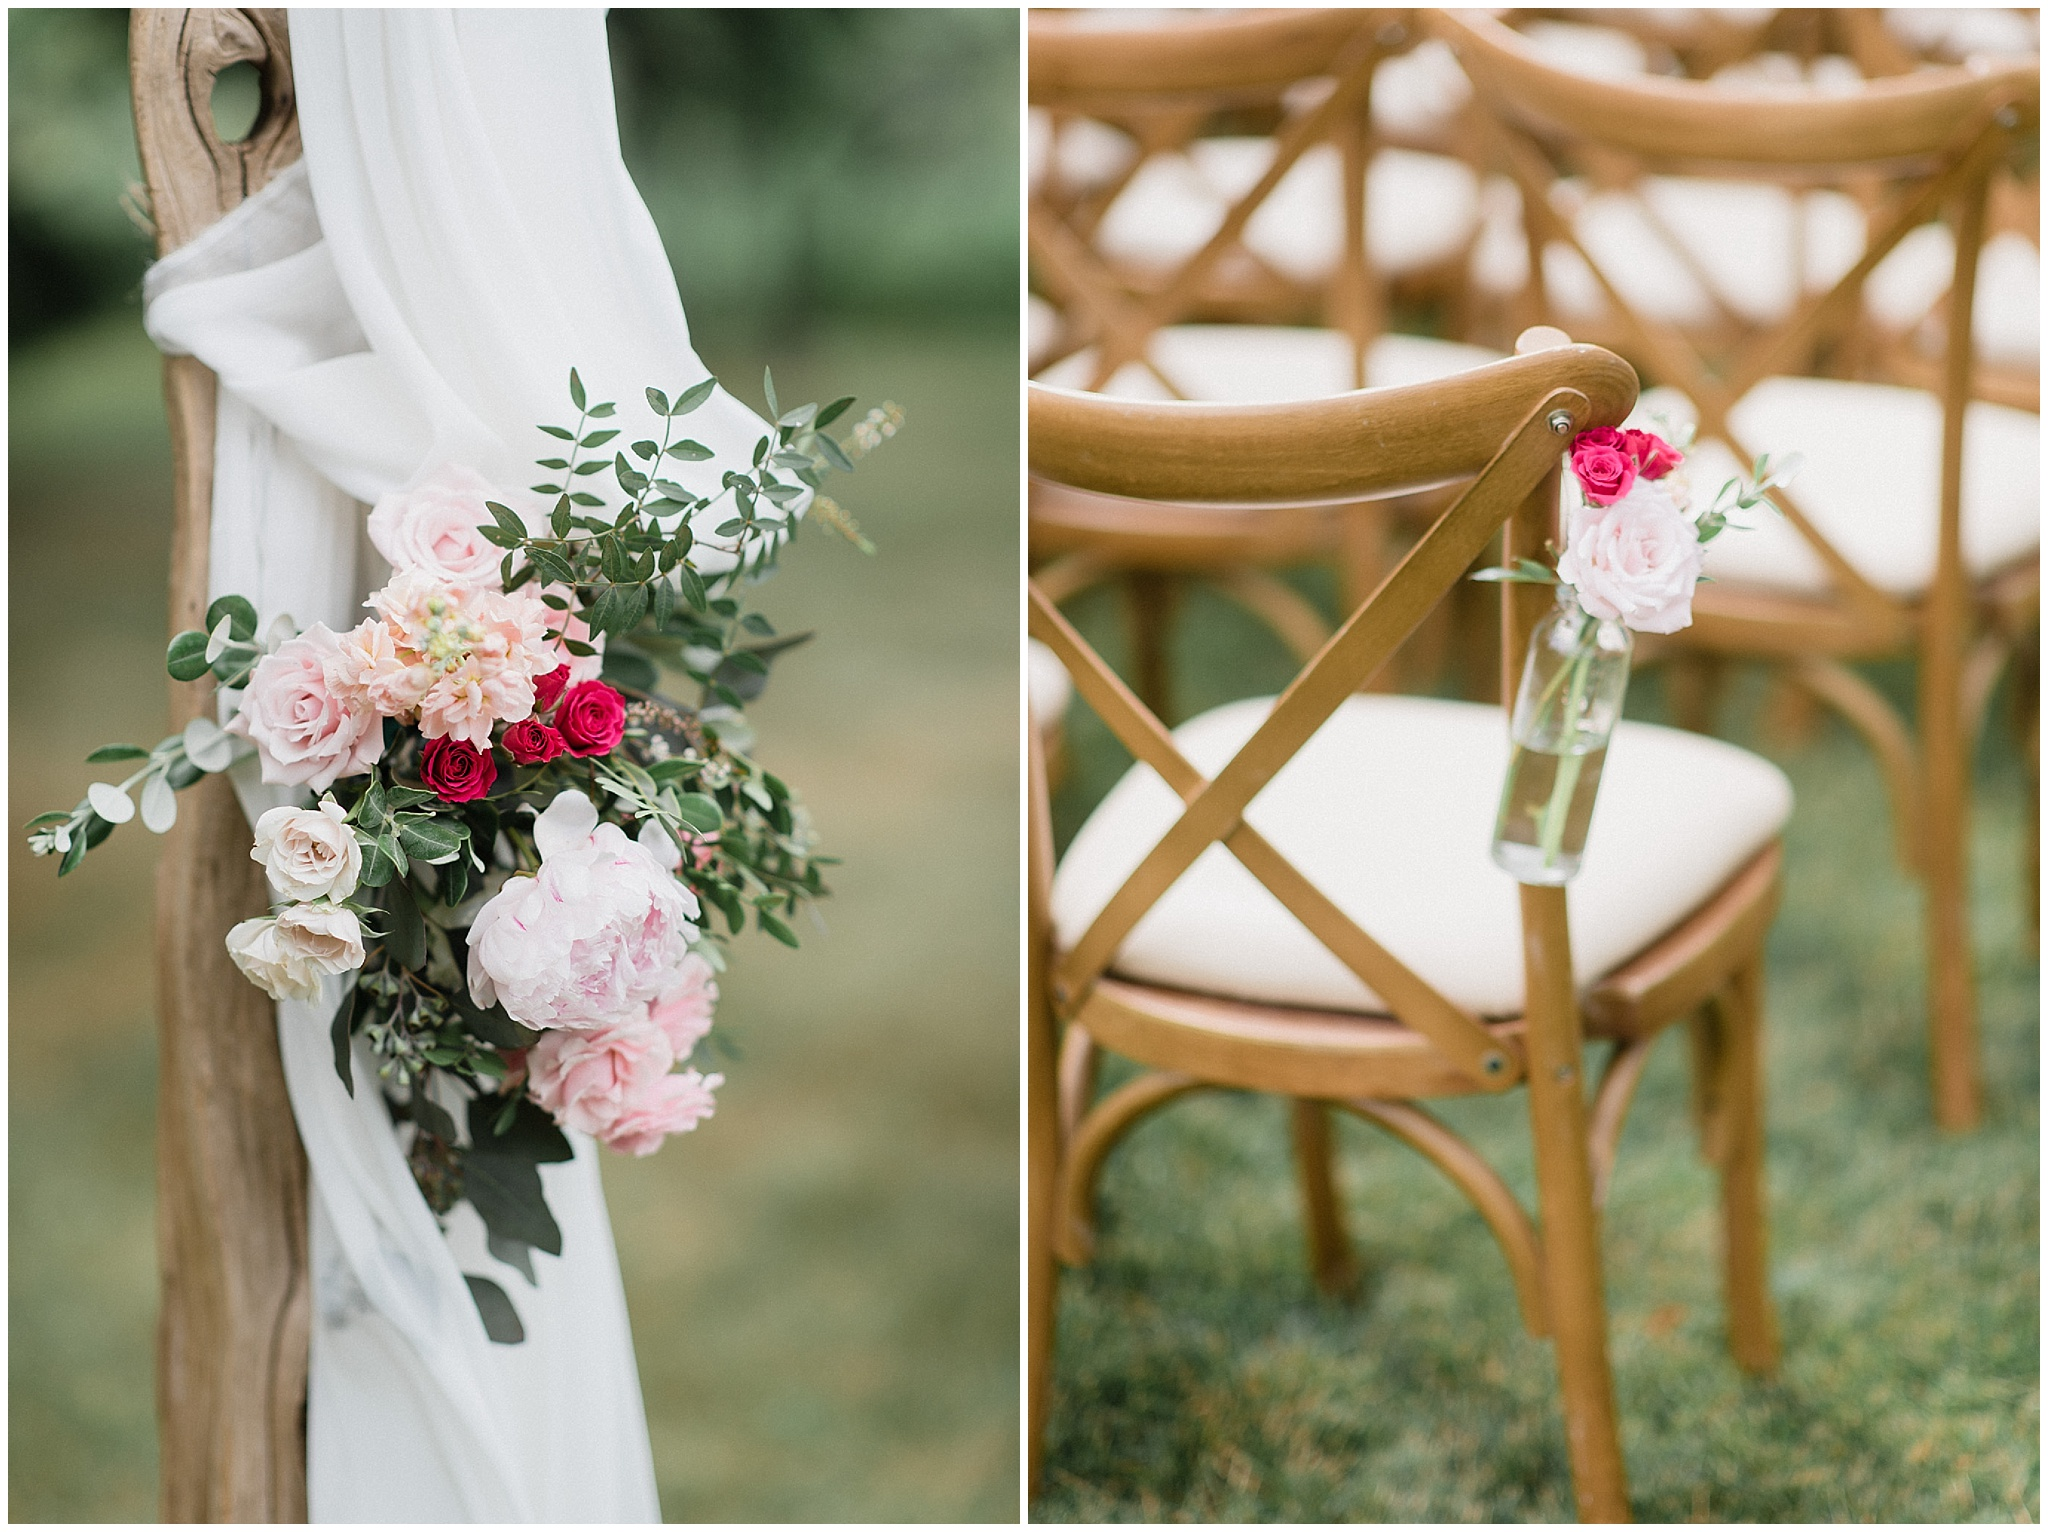 Rustic and romantic DIY Cambium Farms barn wedding by Jenn Kavanagh Photography